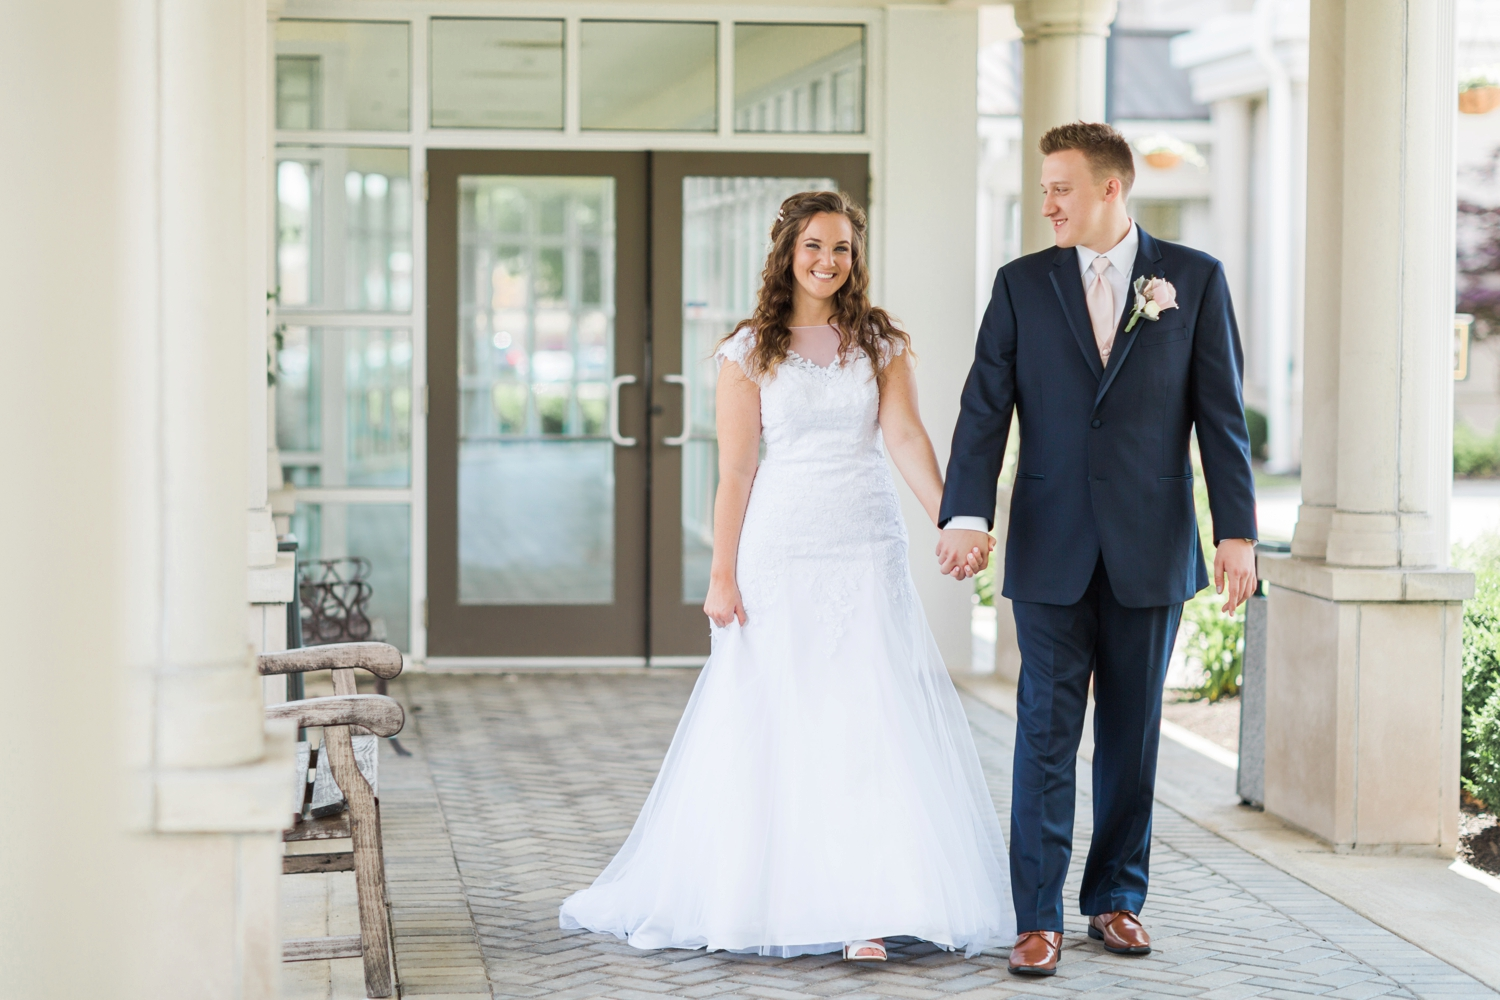 Community_Life_Center_Indianapolis_Indiana_Wedding_Photographer_Chloe_Luka_Photography_6876.jpg